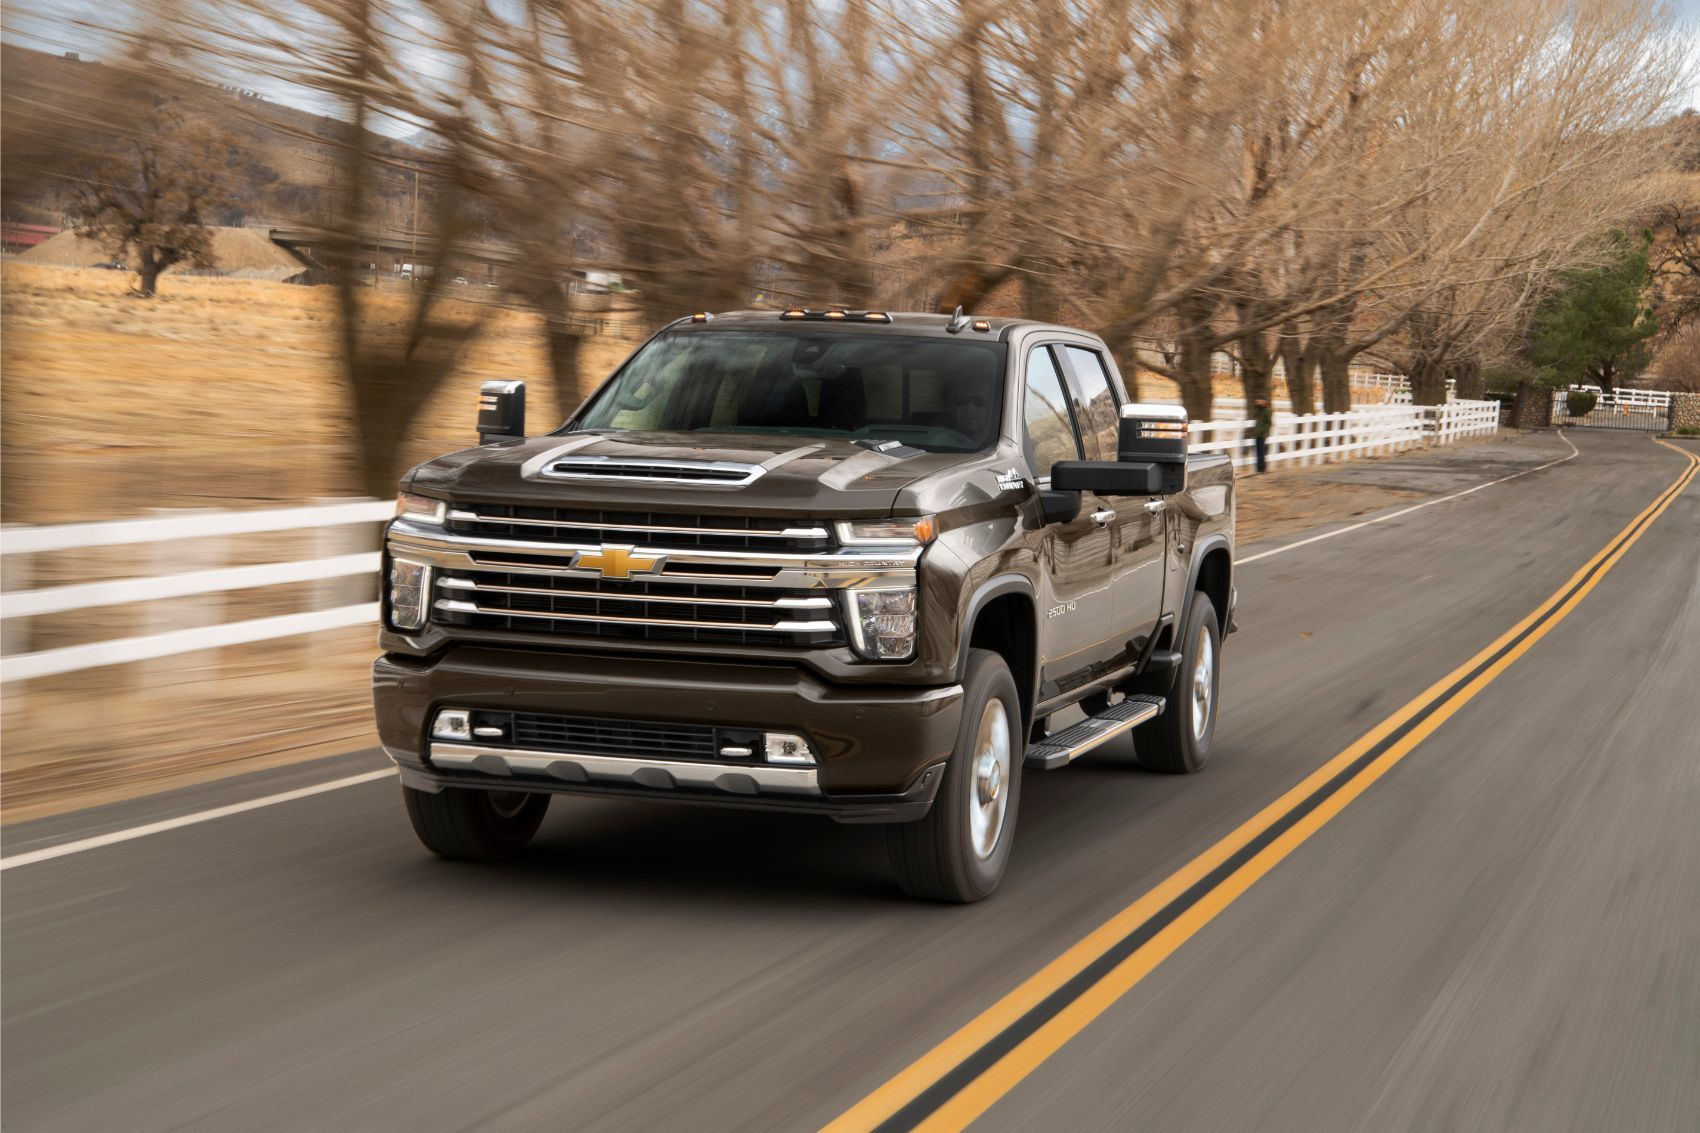 2020 Chevrolet Silverado 2500HD HighCountry 023